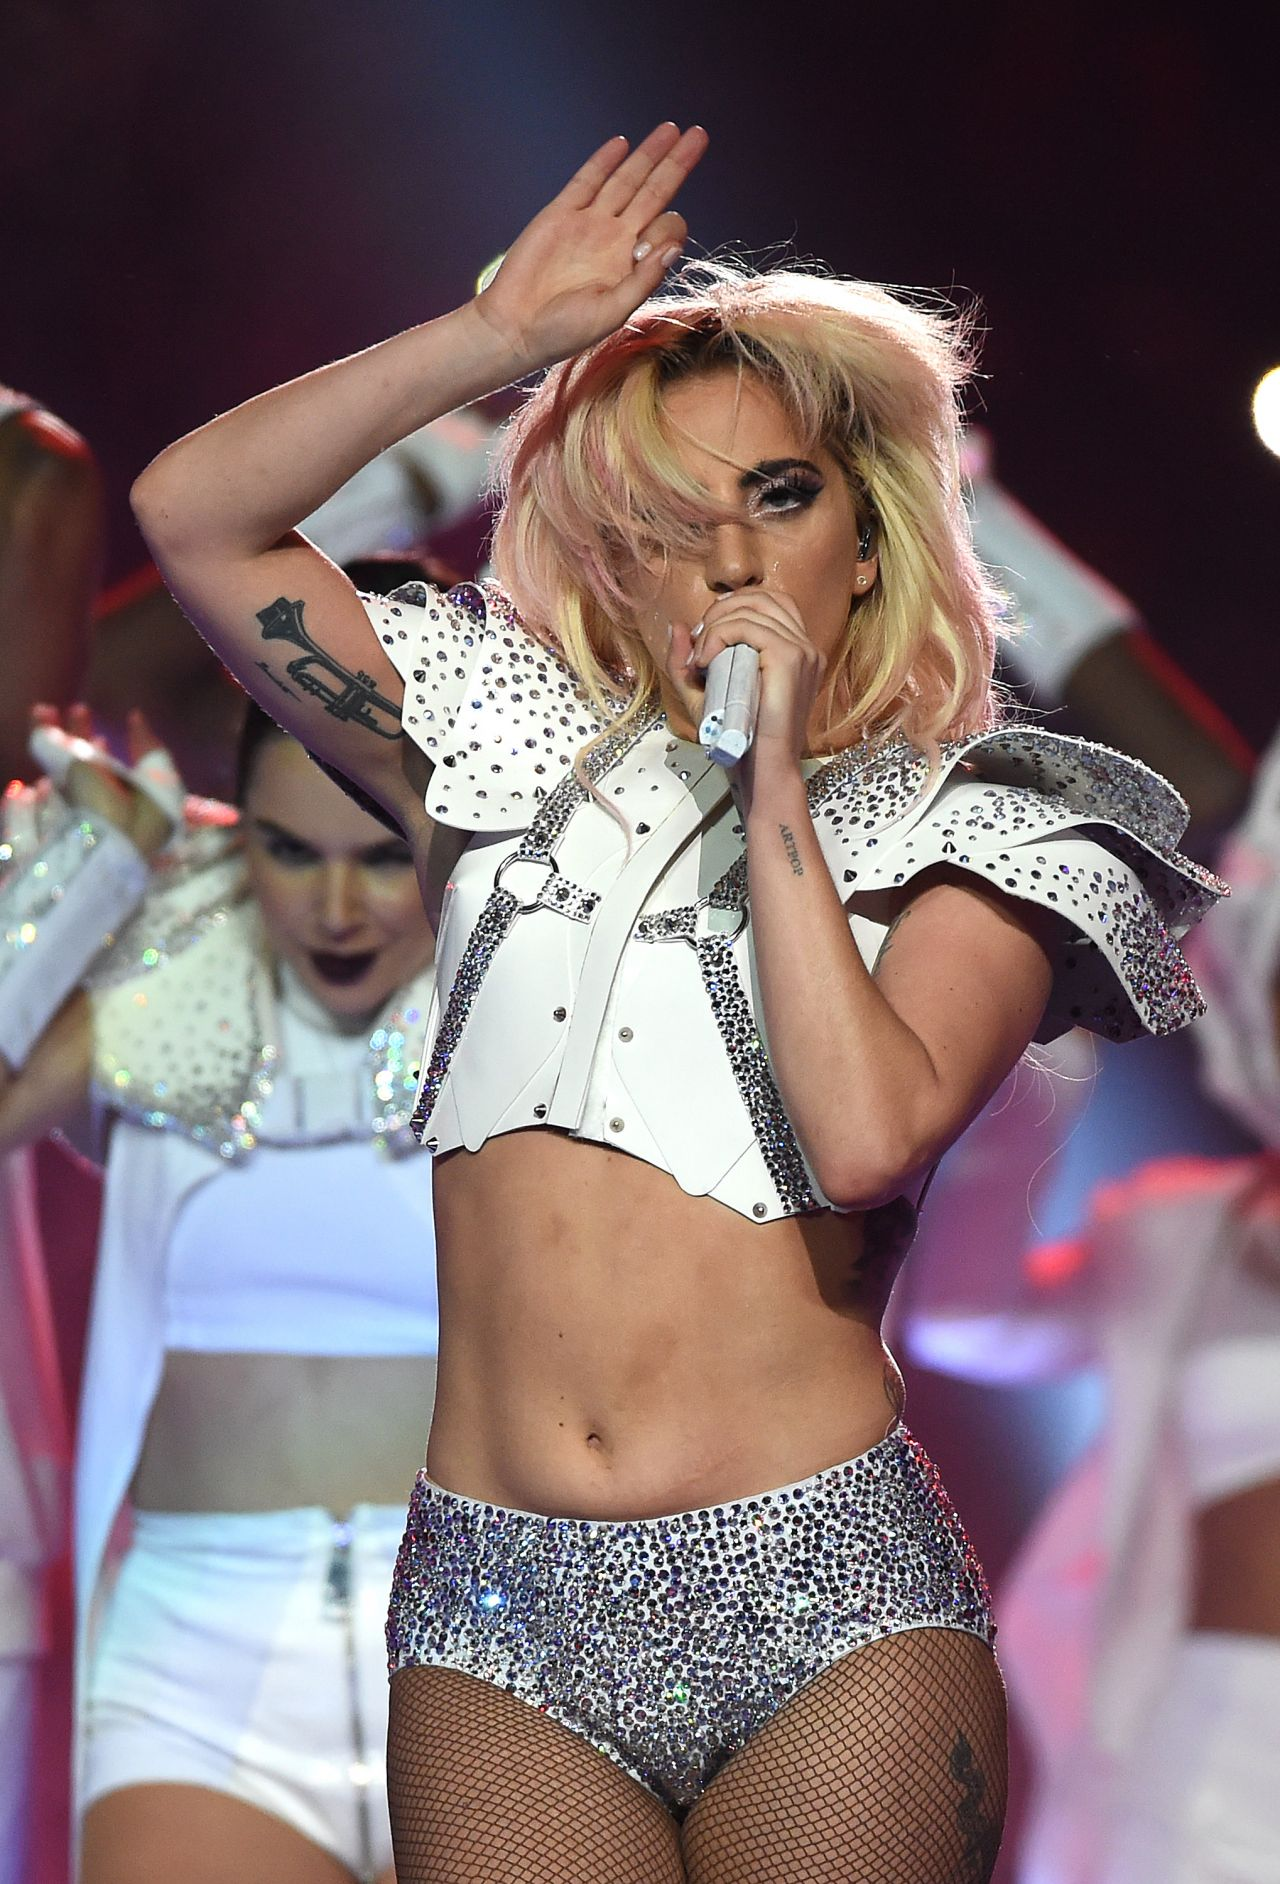 Will Lady Gaga Politicise the Super Bowl Half-time Show